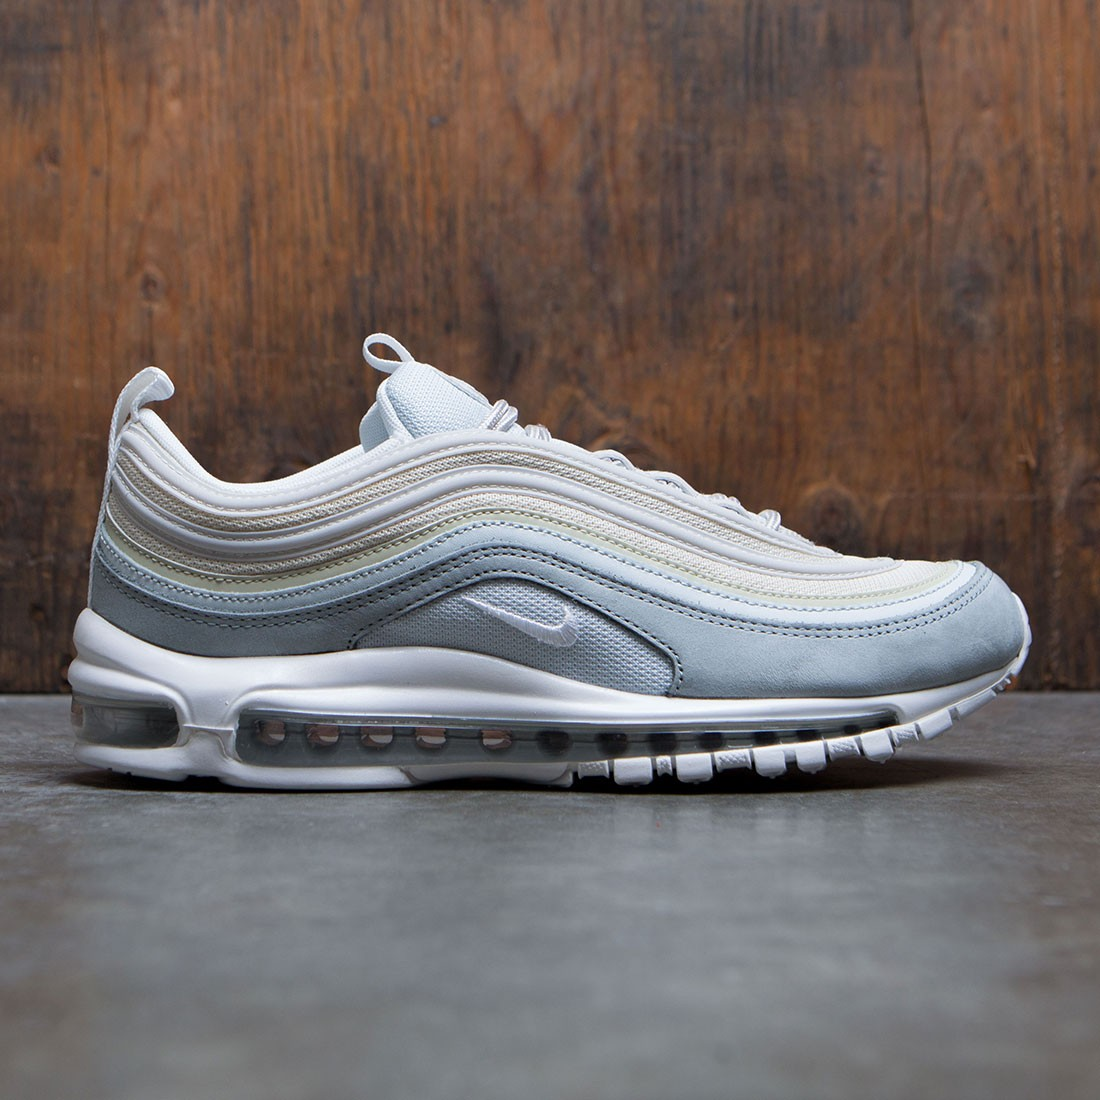 PREORDER] Nike Air Max 97 Premium Light Pumice, Men's